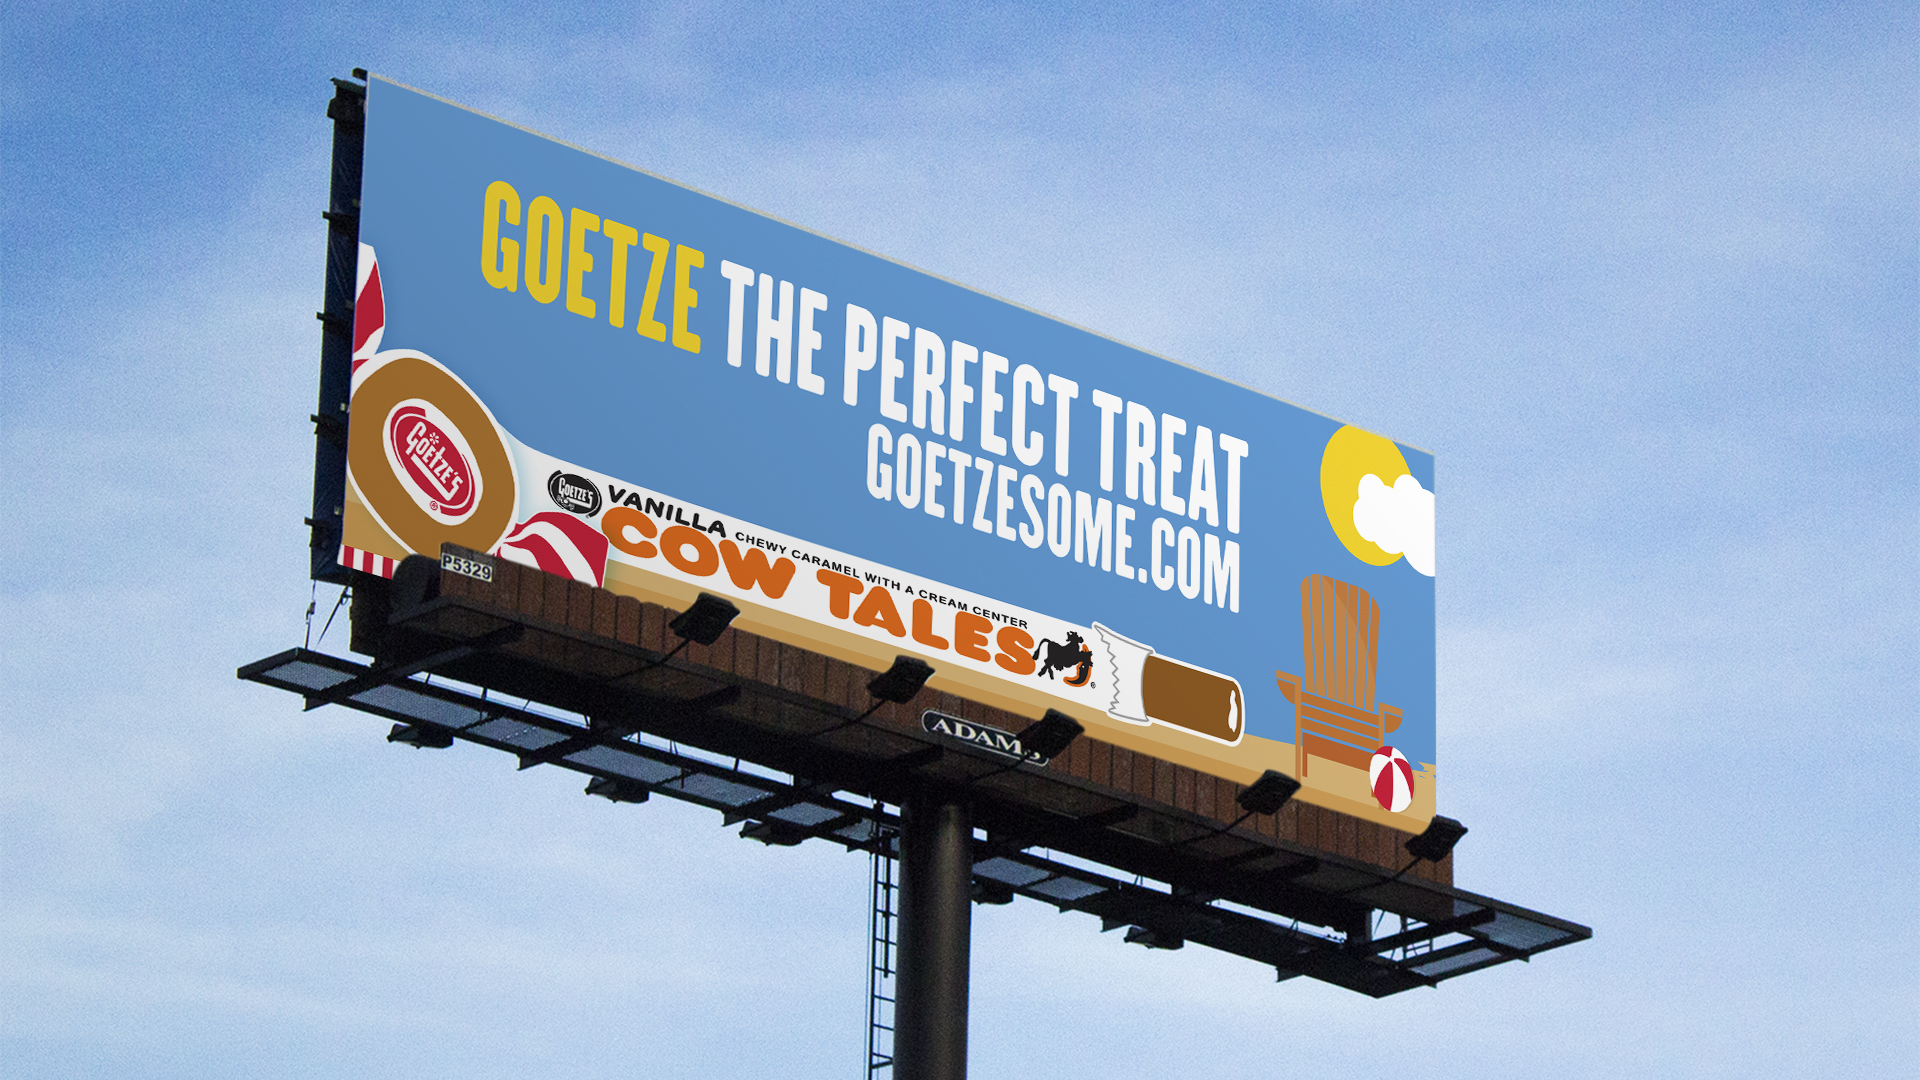 Goetze's billboard